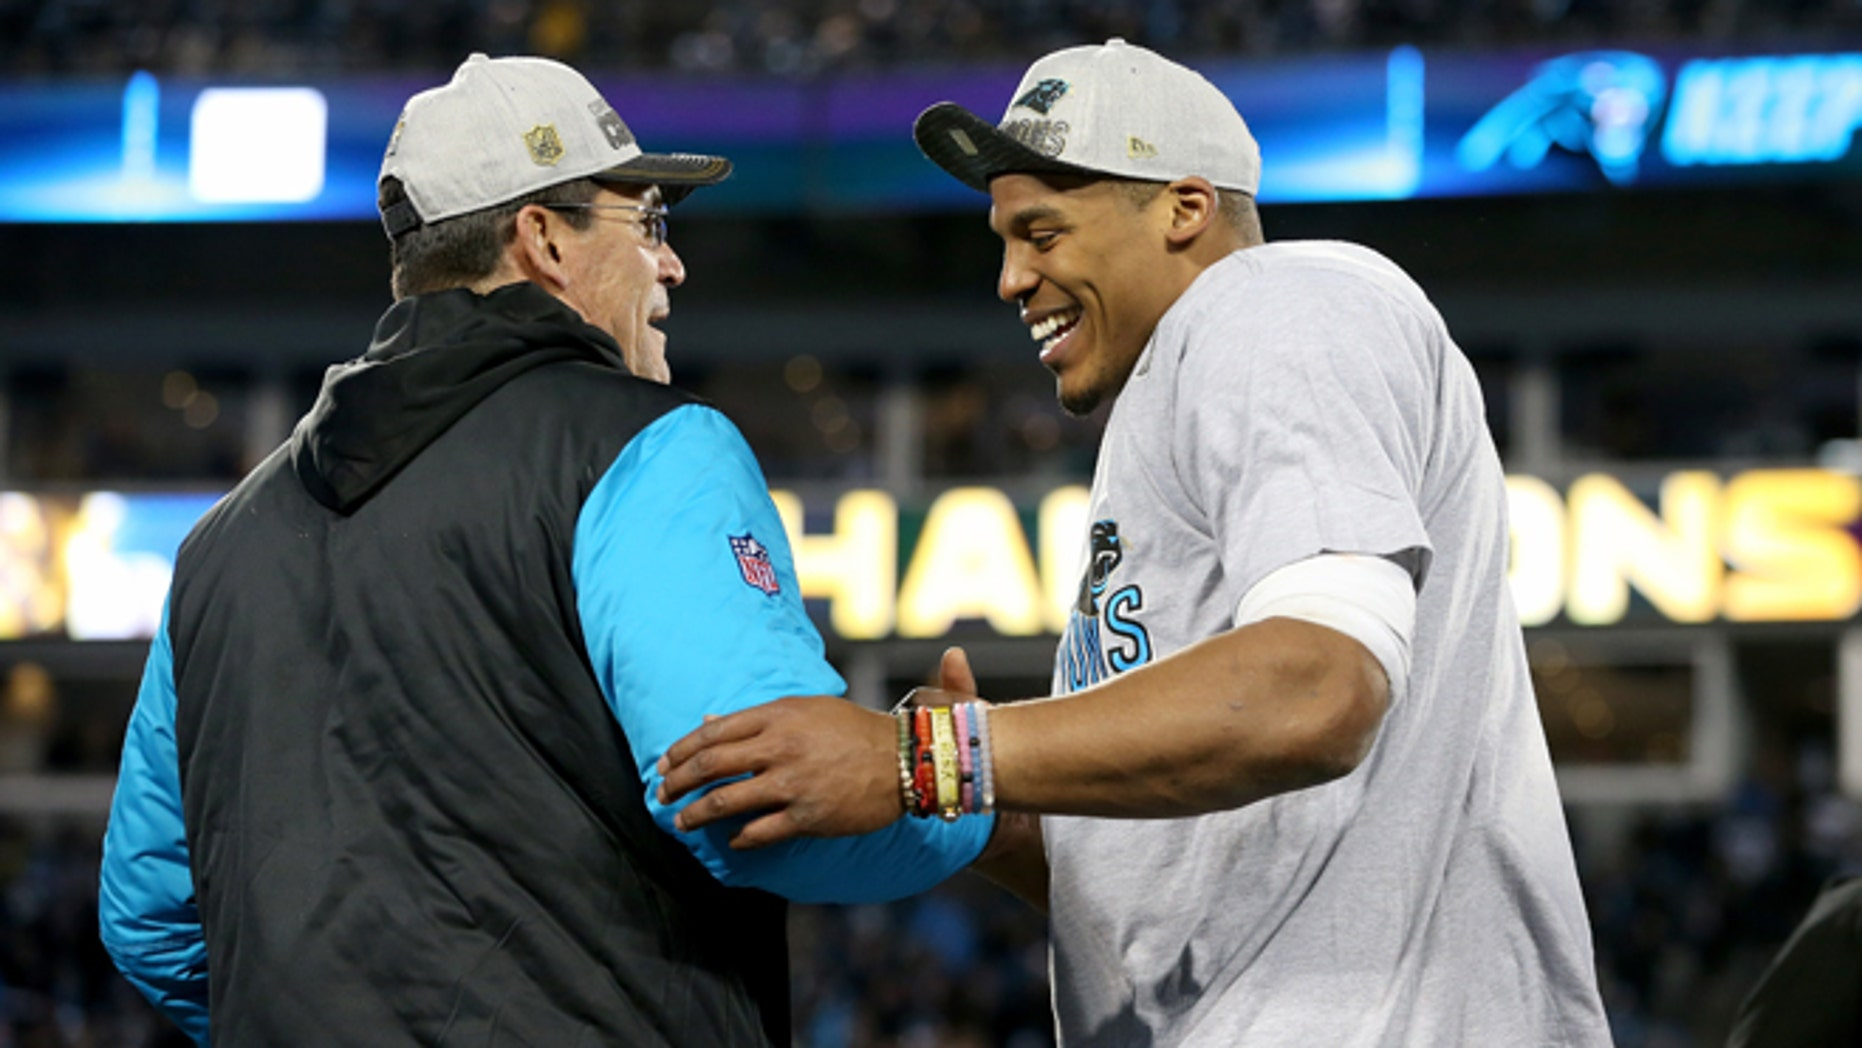 CHARLOTTE, NC - JANUARY 24:  Head coach Ron Rivera of the Carolina Panthers celebrates with Cam Newton #1 after defeating the Arizona Cardinals with a score of 49 to 15 to win the NFC Championship Game at Bank of America Stadium on January 24, 2016 in Charlotte, North Carolina.  (Photo by Streeter Lecka/Getty Images)